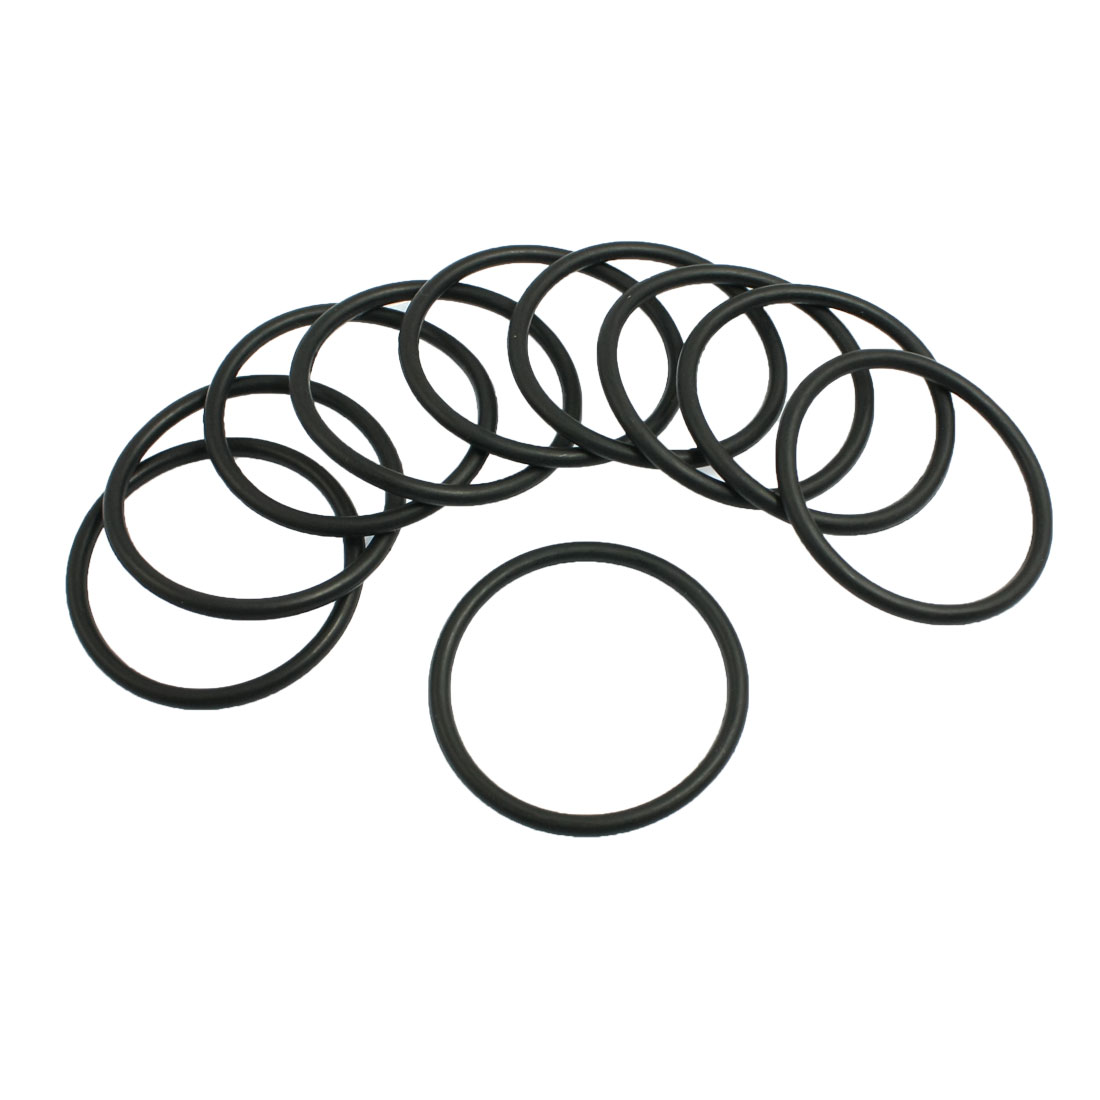 10Pcs Nitrile Rubber O Type Sealing Ring Gasket Grommets Black 4mm x 57mm